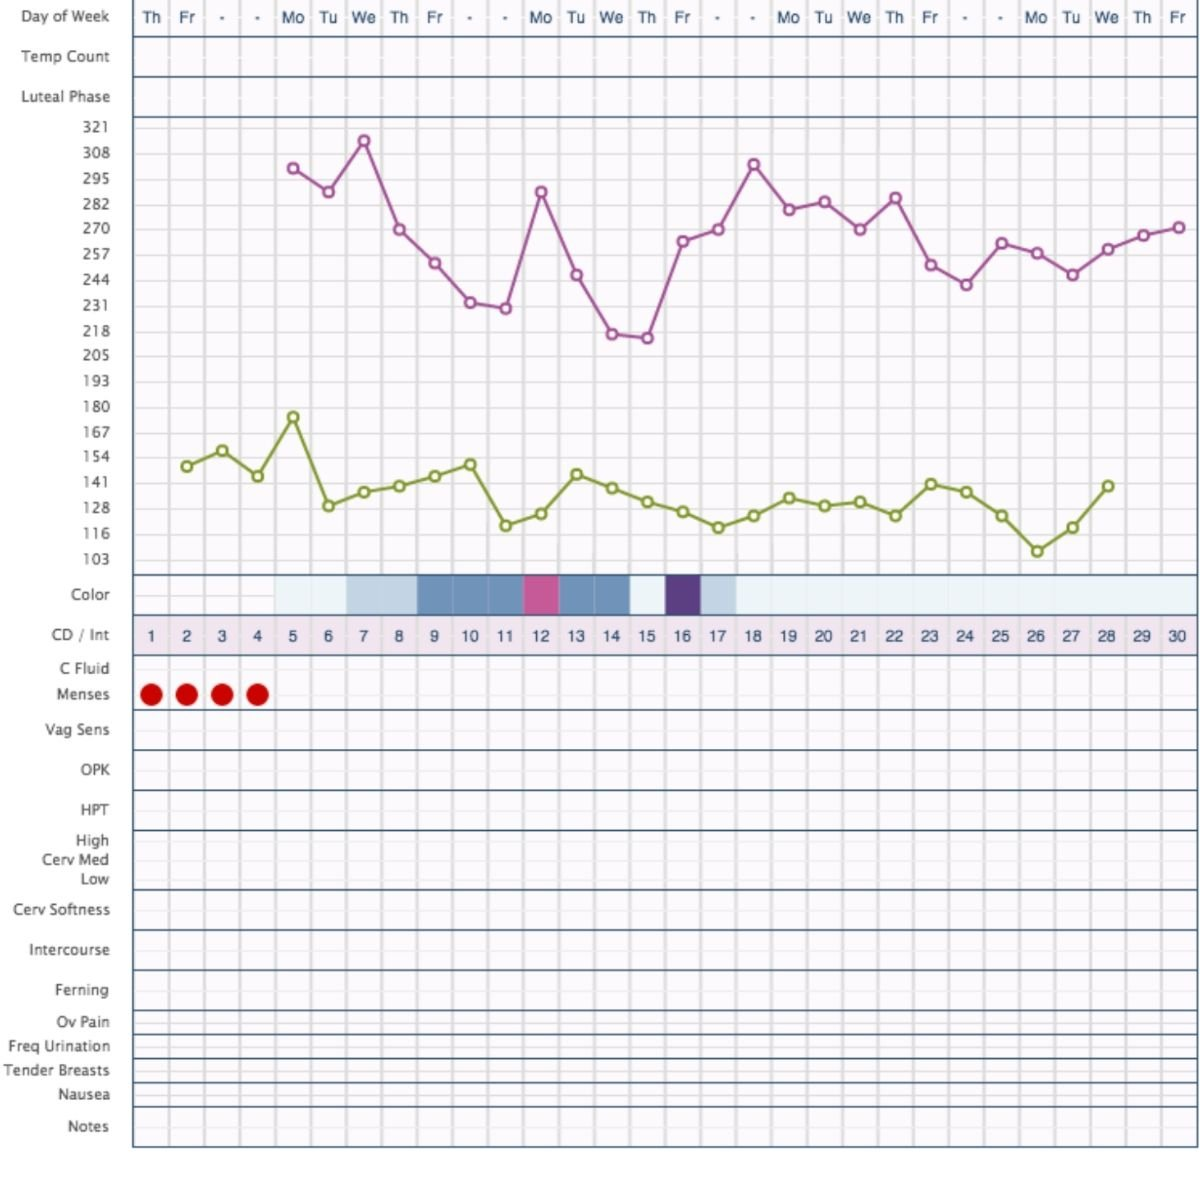 an example chart of fertility tracking